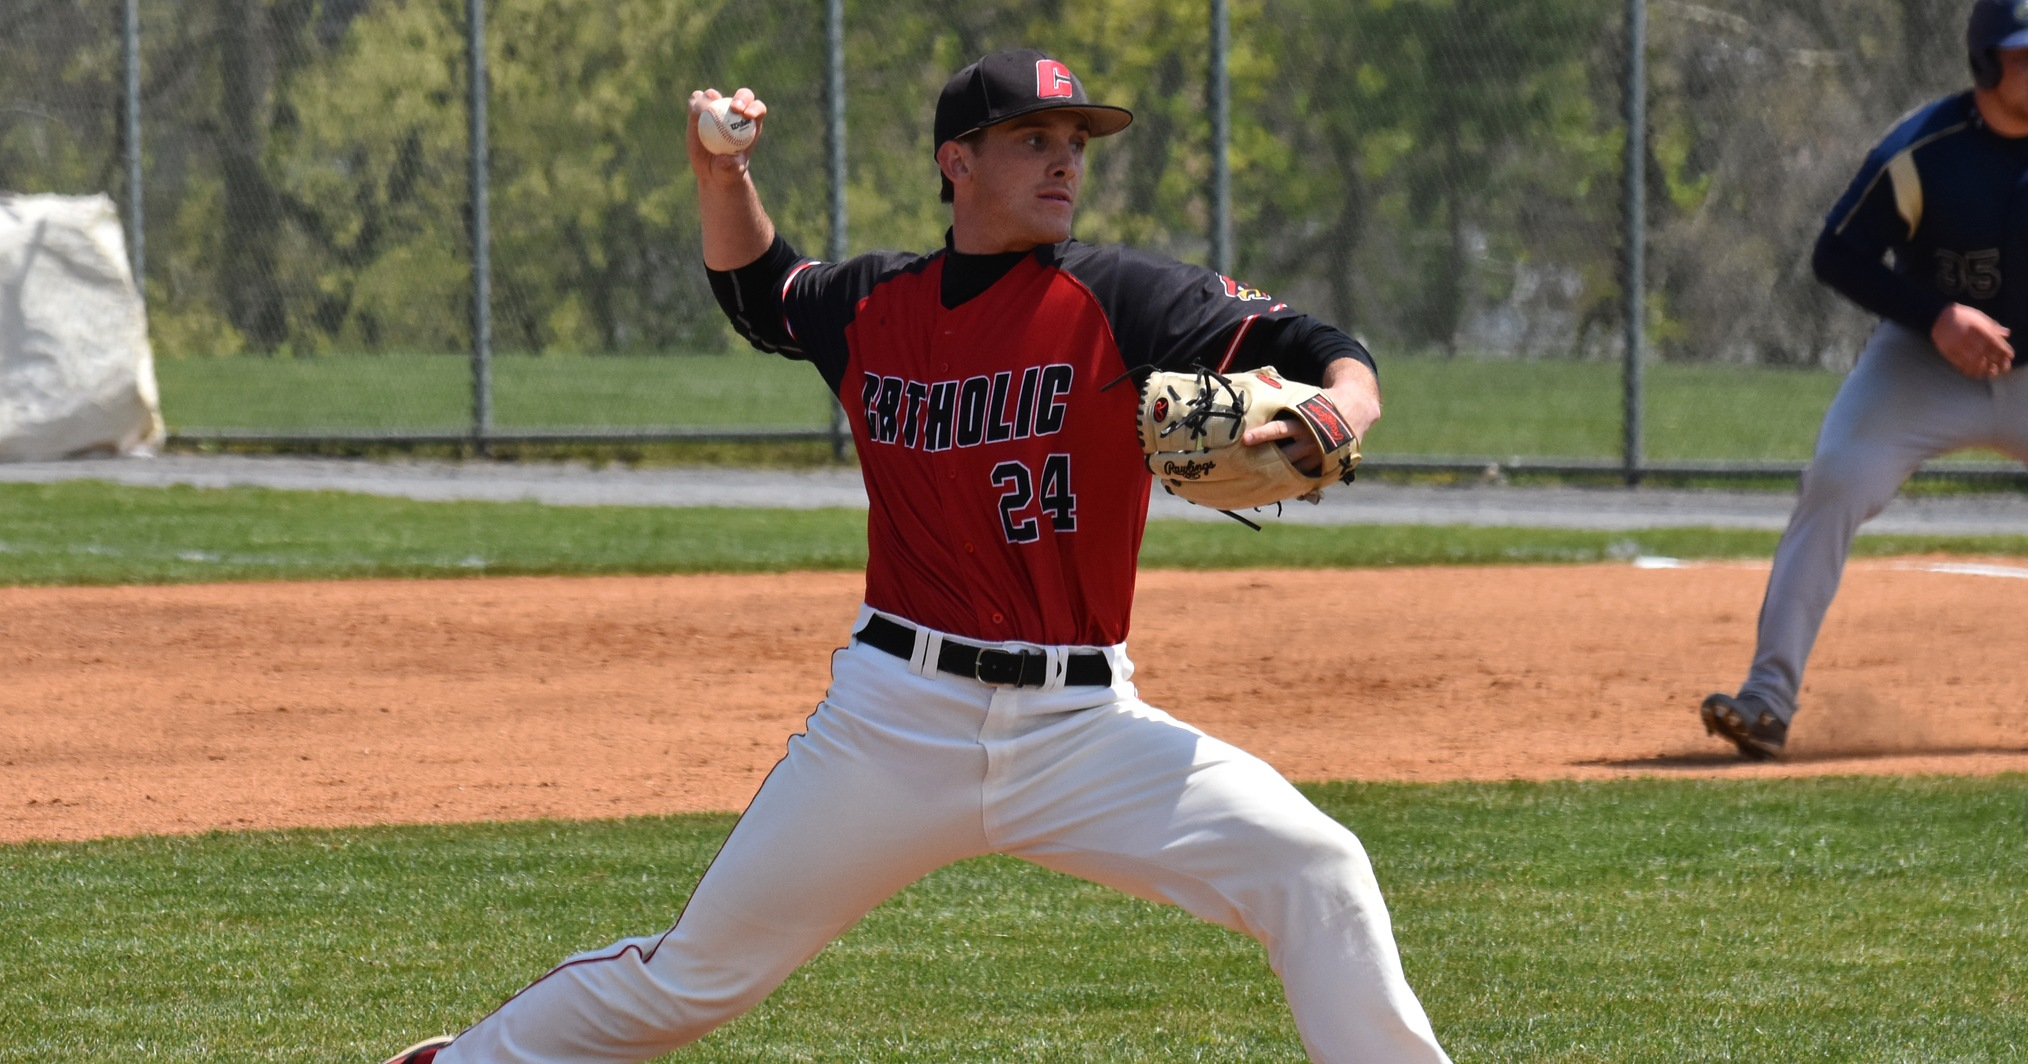 Gately Leads on the Mound as Cardinals Win, 15-3